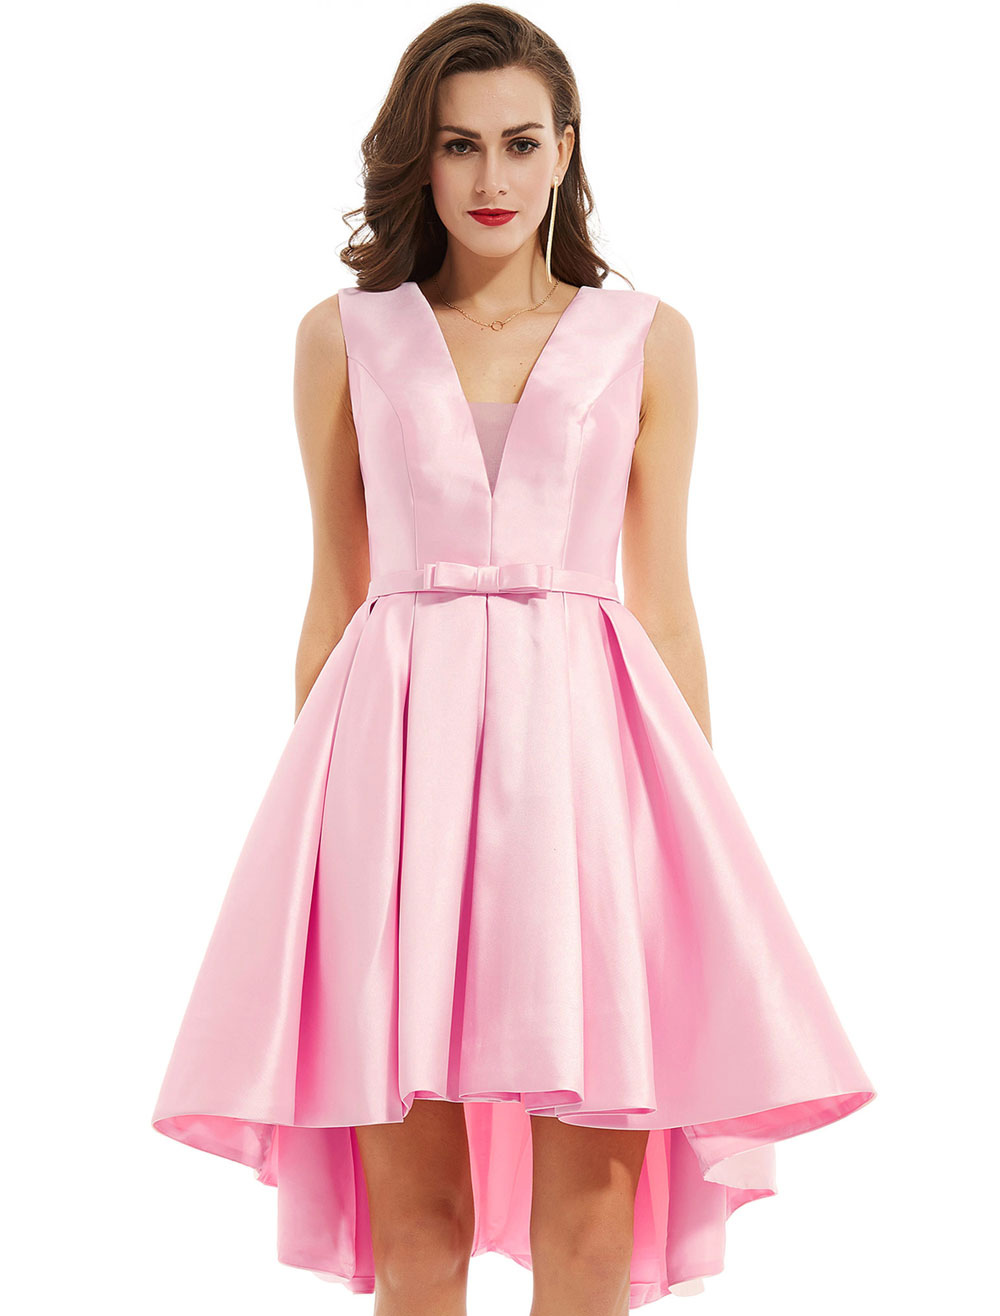 Cocktail Dress Soft Pink V Neck High Low Asymmetrical Bow Sash Short Graduation Party Dress